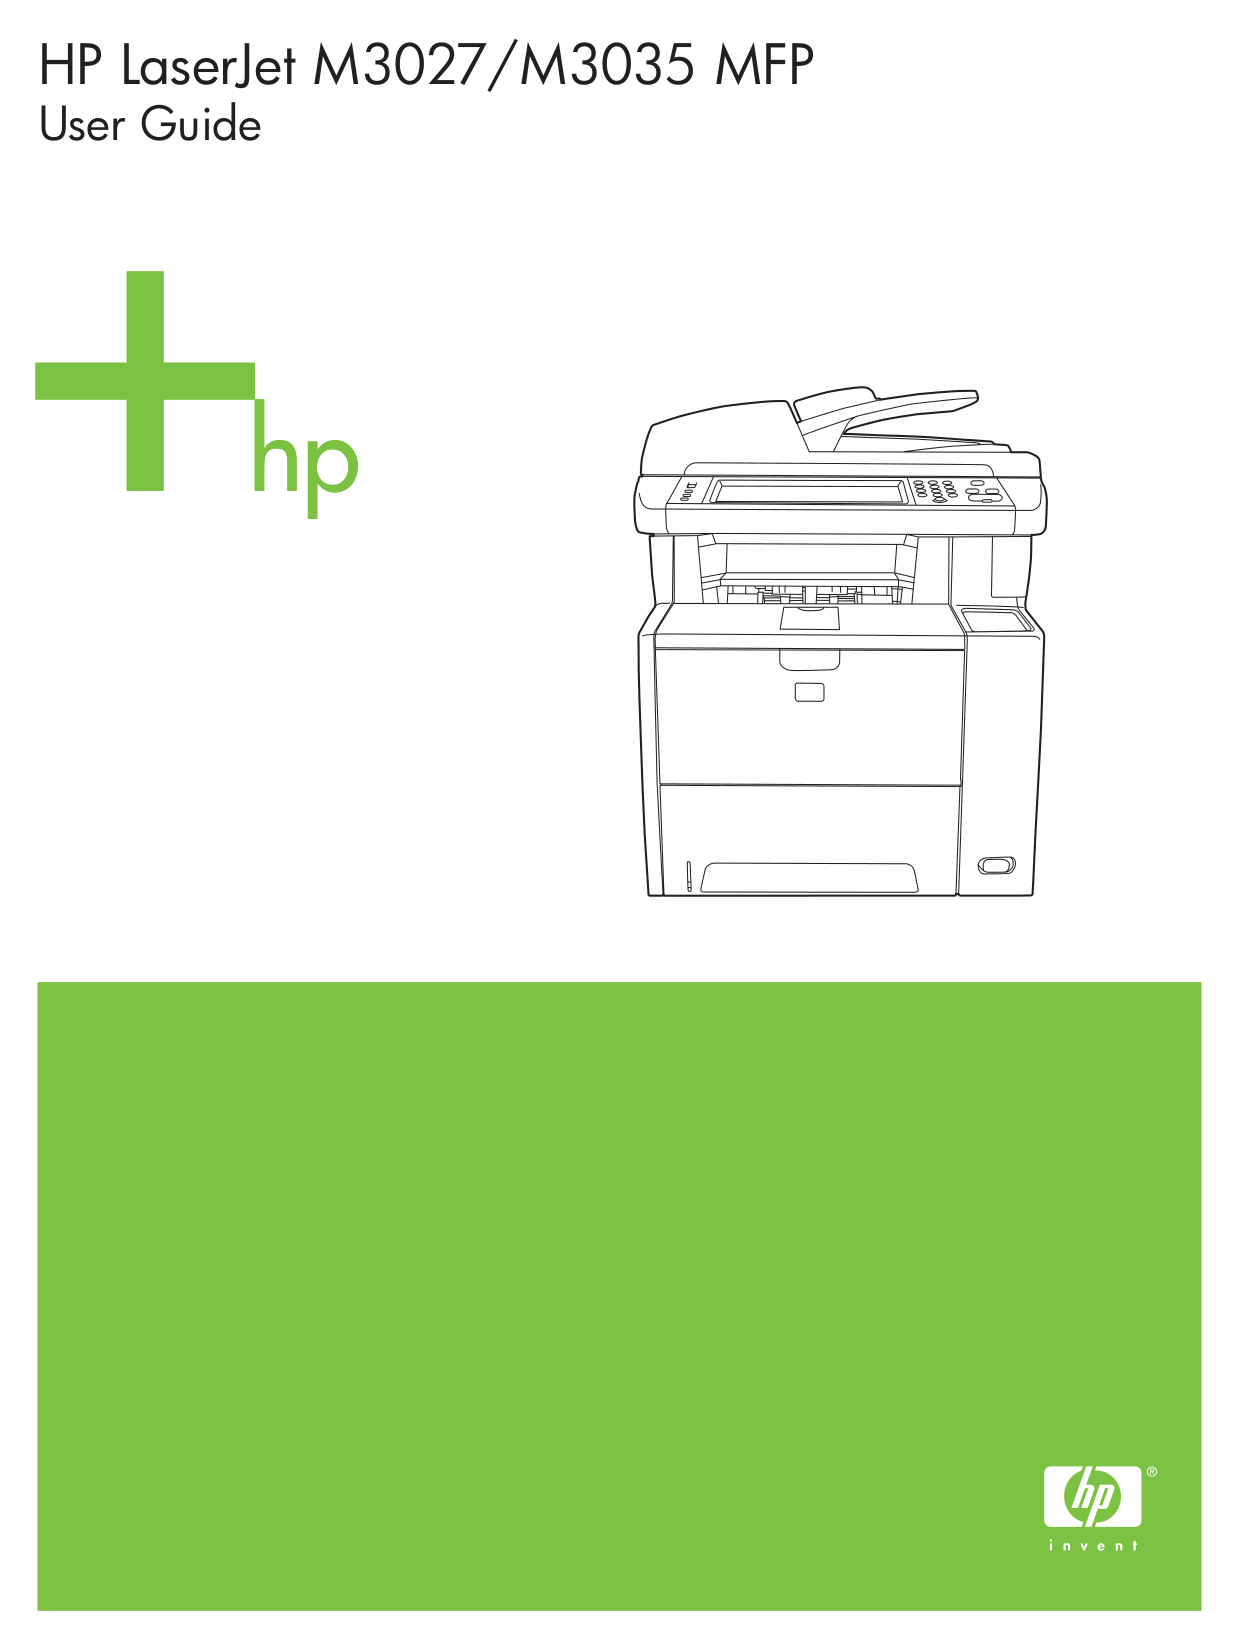 Hp laserjet m3027, m3035 multifunction service manual, parts and.